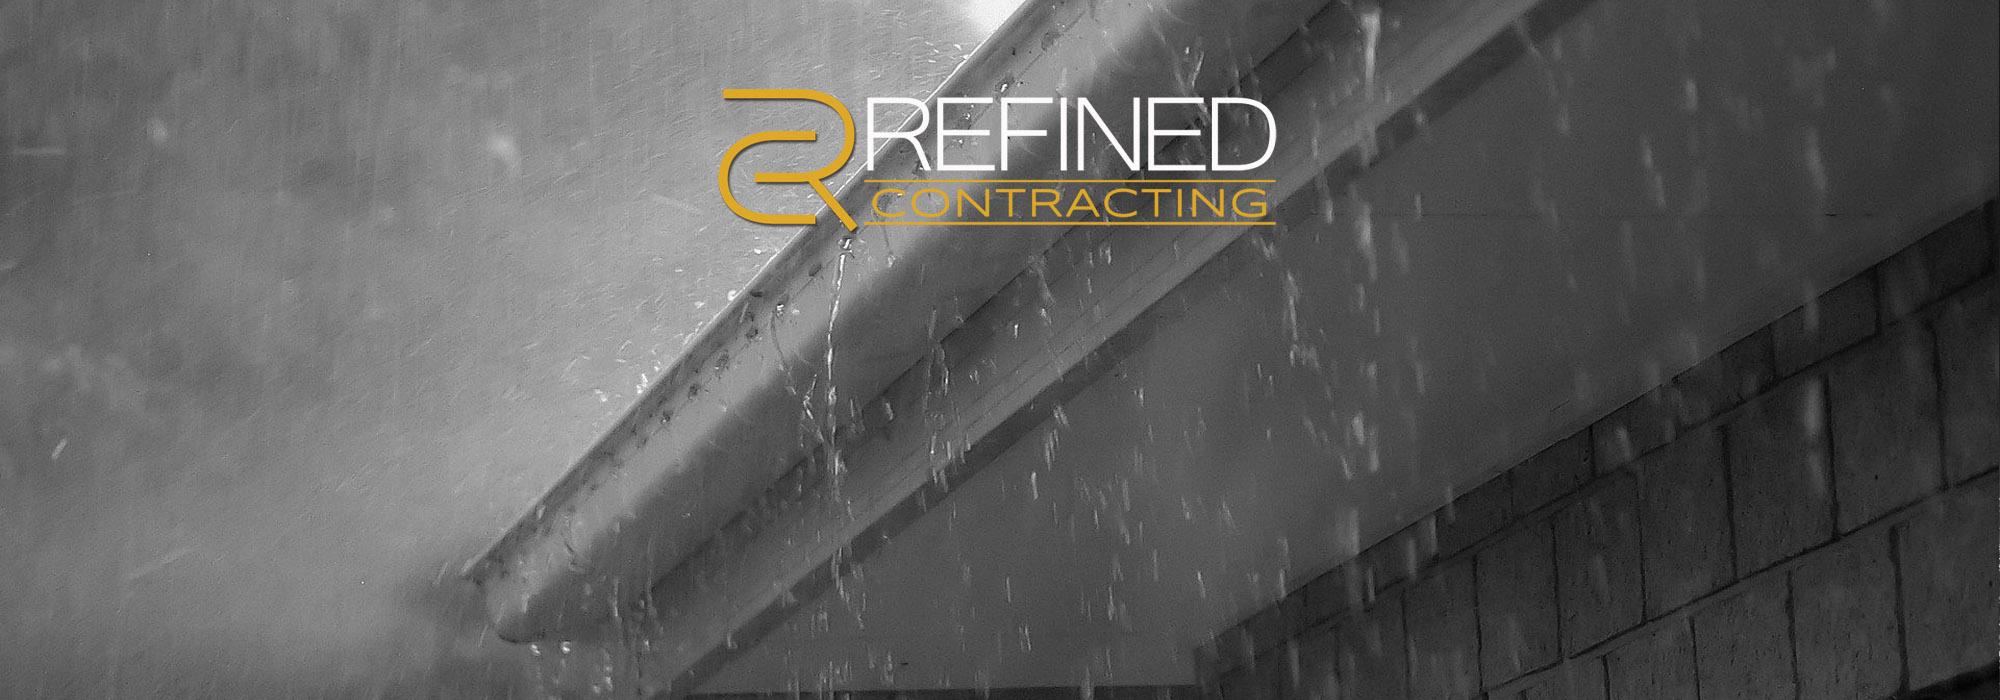 New rain gutters by Refined Construction can spare your home of destructive water intrusion by directing rain water away from your home.